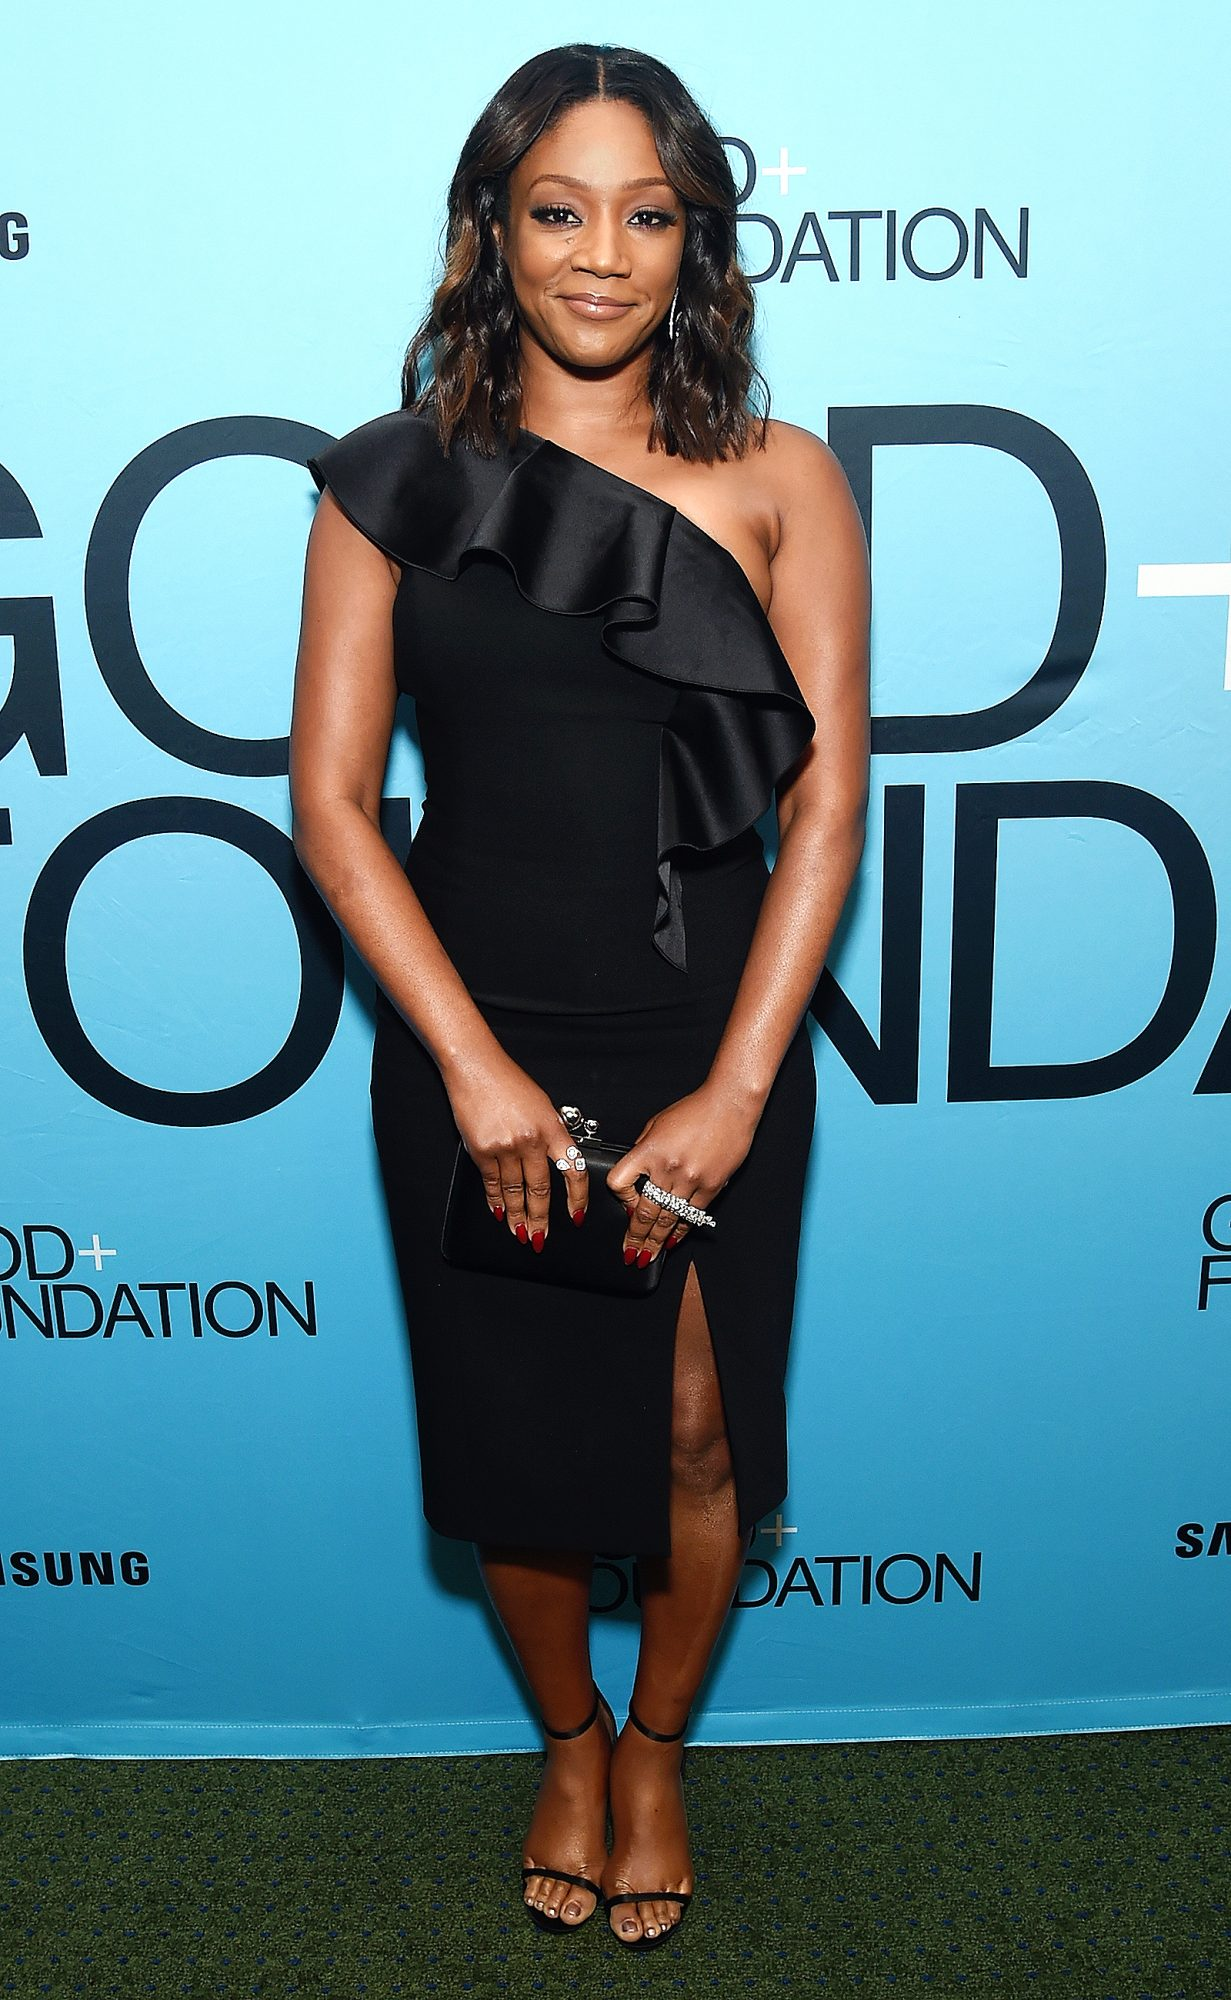 TIFFANY HADDISH: CLEAN YOURSELF VERY THOROUGHLY